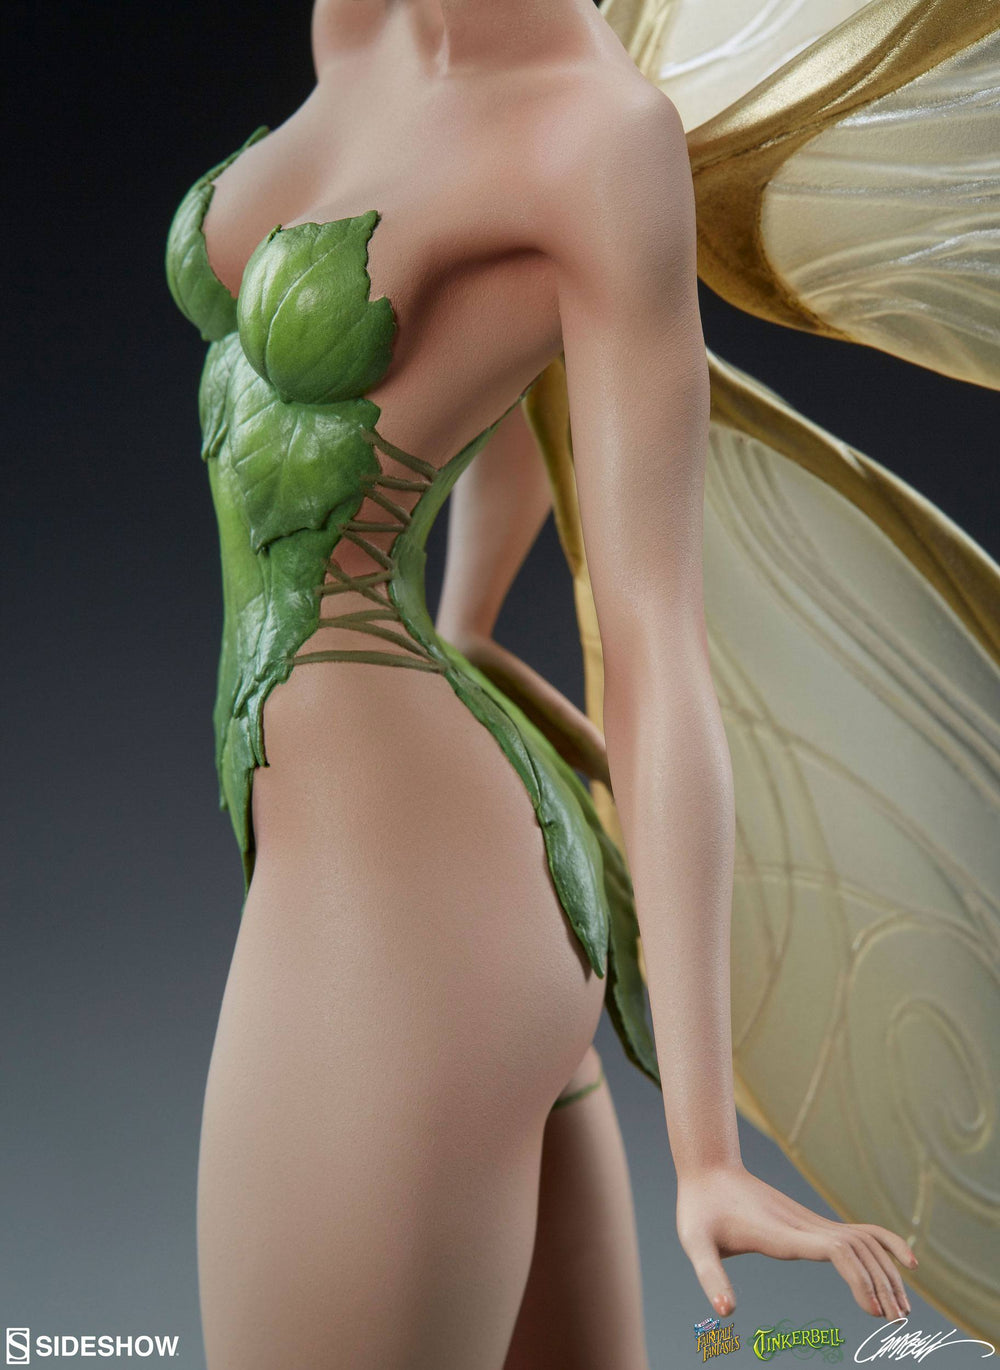 Sideshow Collectibles Fairytale Fantasies Collection Tinkerbell Statue